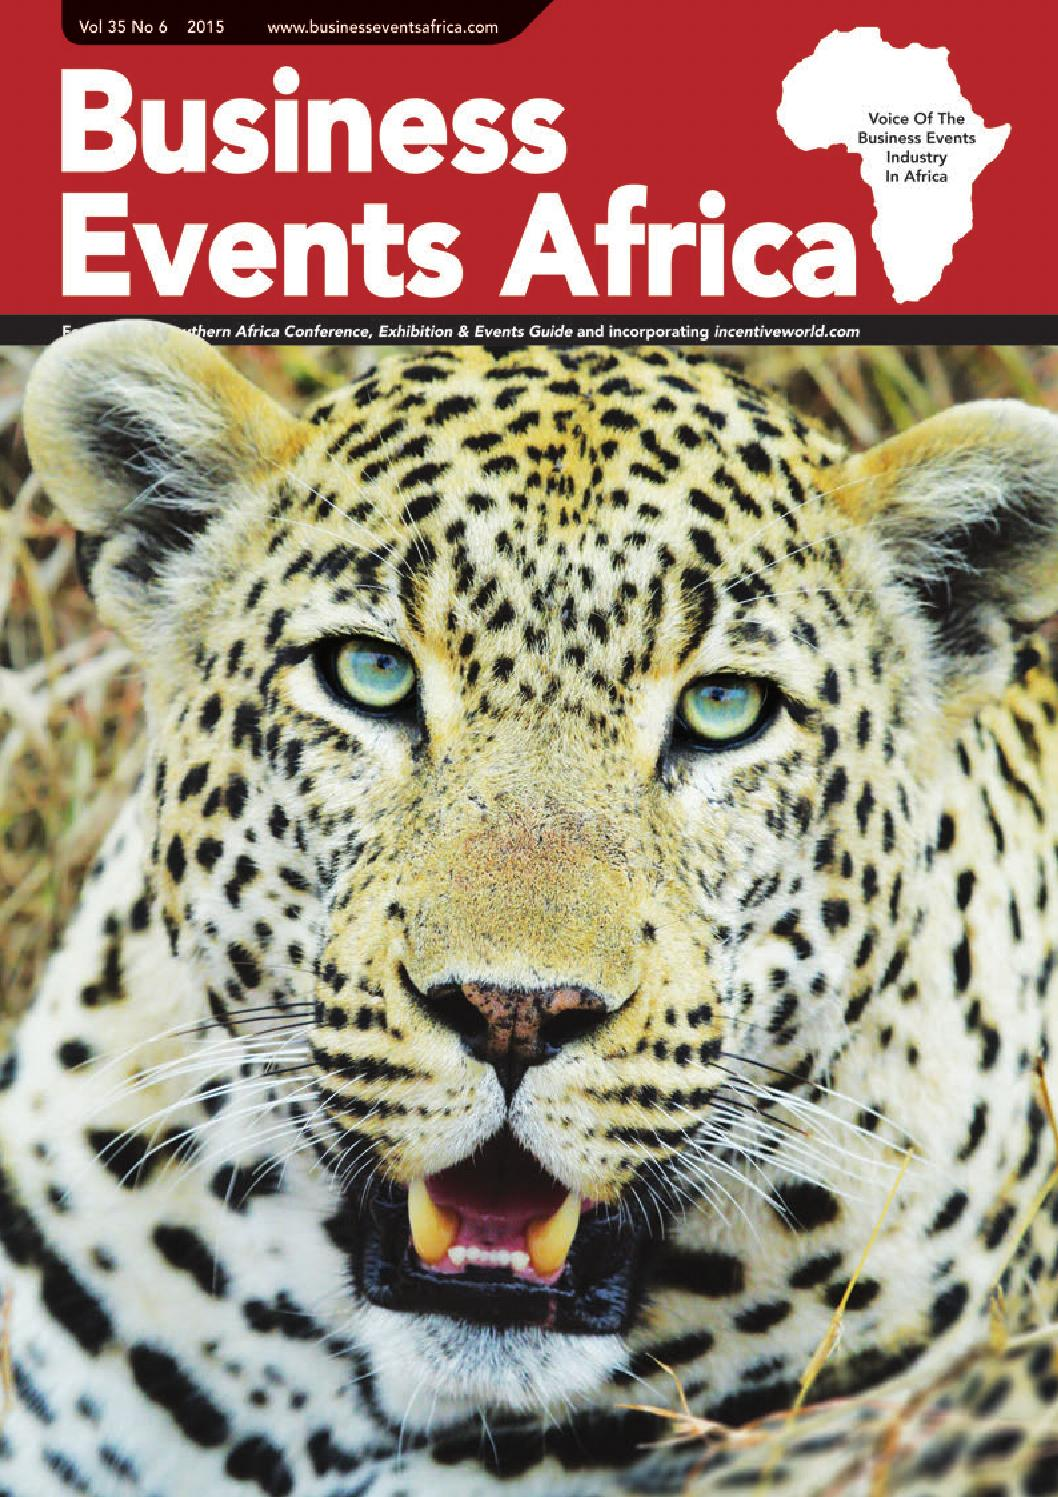 Business Events Africa Vol 35 No 06 By Contact Publications Issuu Circuit Breakers Witbank O Olxcoza